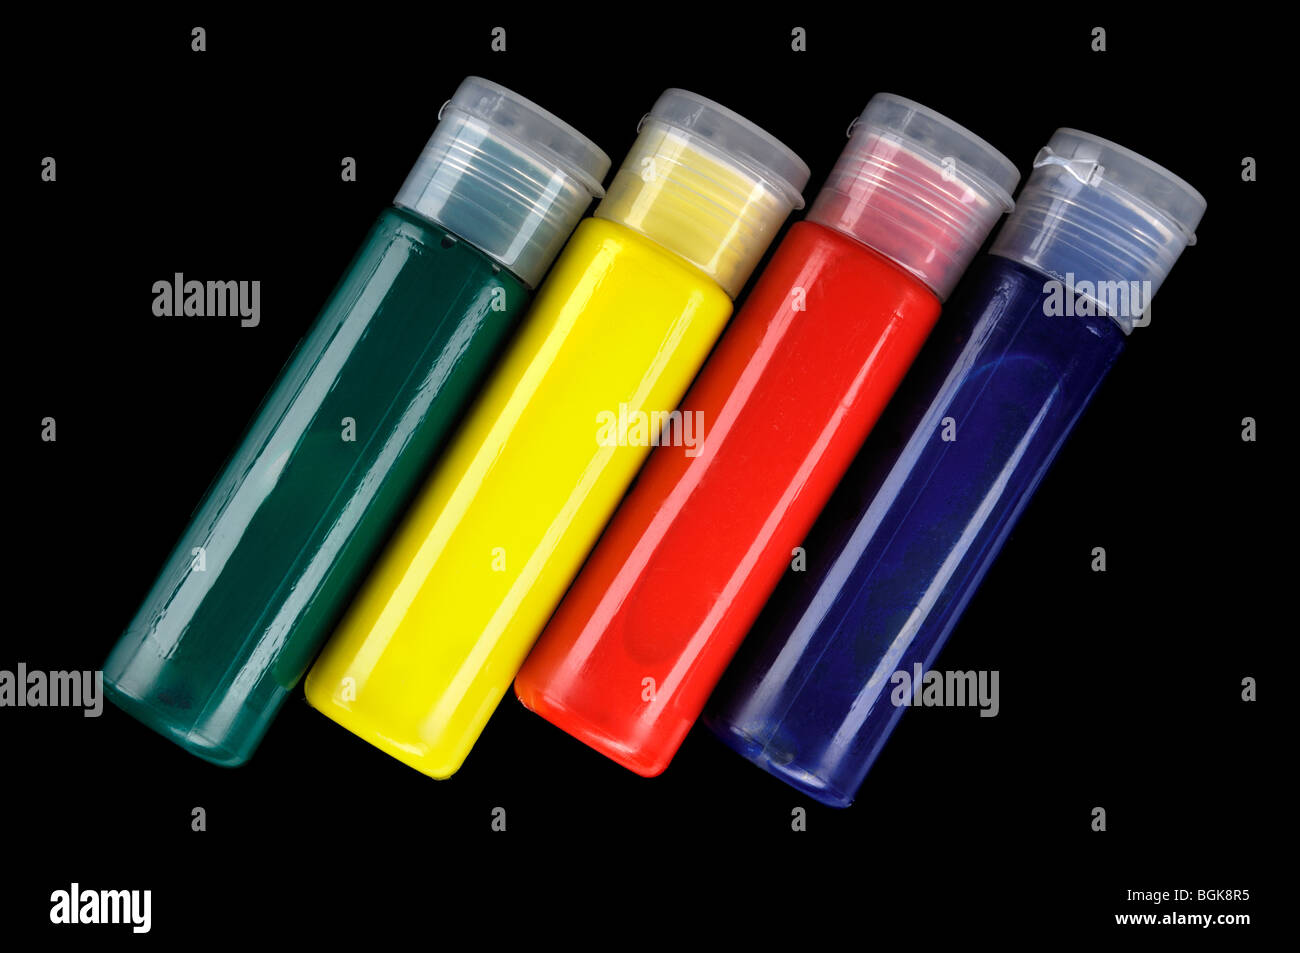 Tubes of colorful face paint isolated on black background - Stock Image